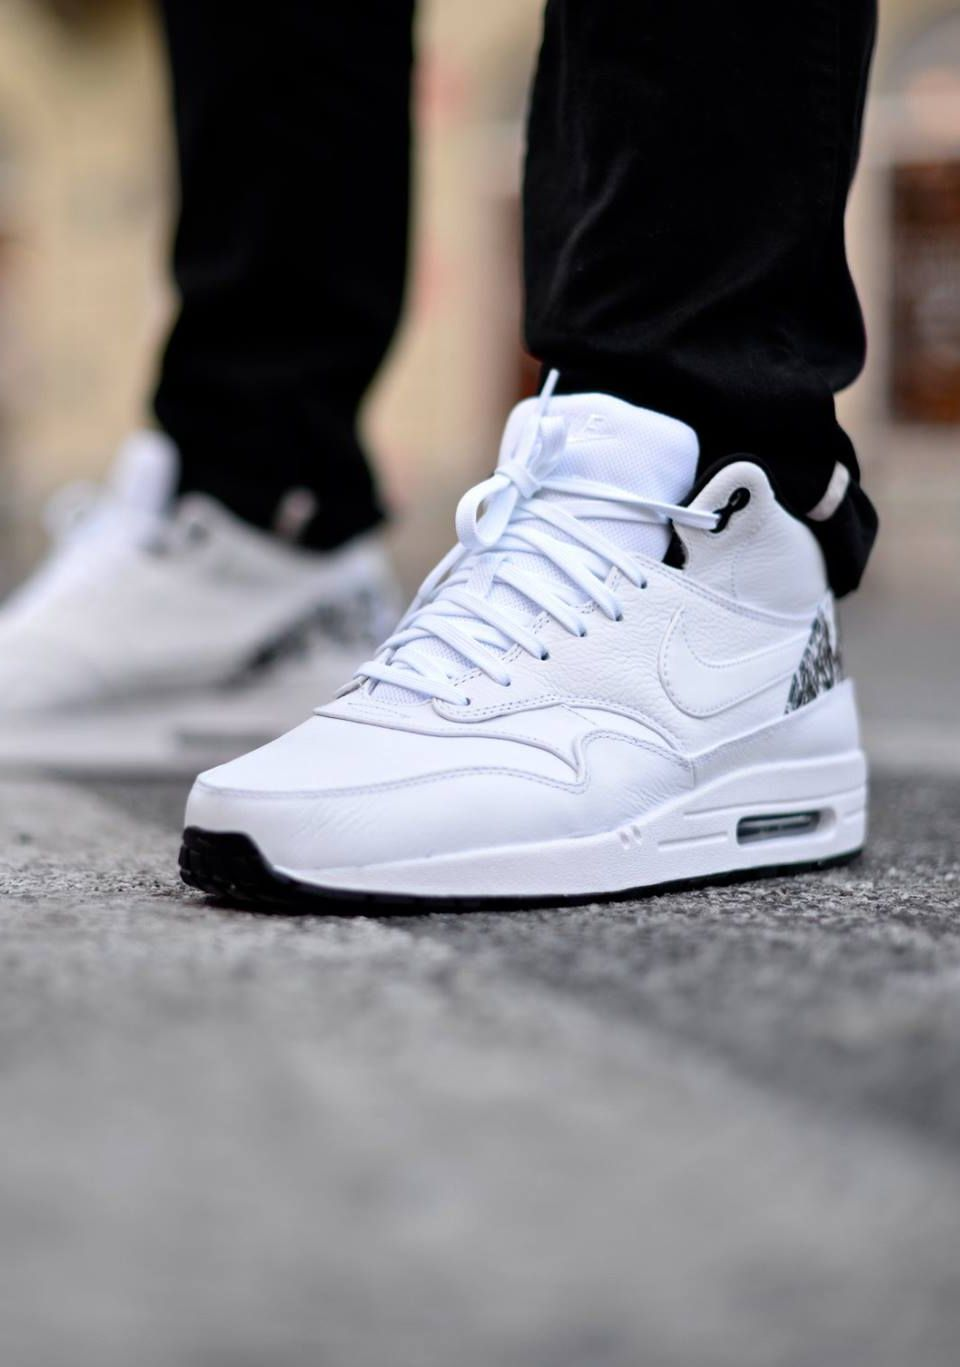 t shirt yve saint laurent - 1000+ images about ? Nike air max on Pinterest | Nike Air Max 90s ...